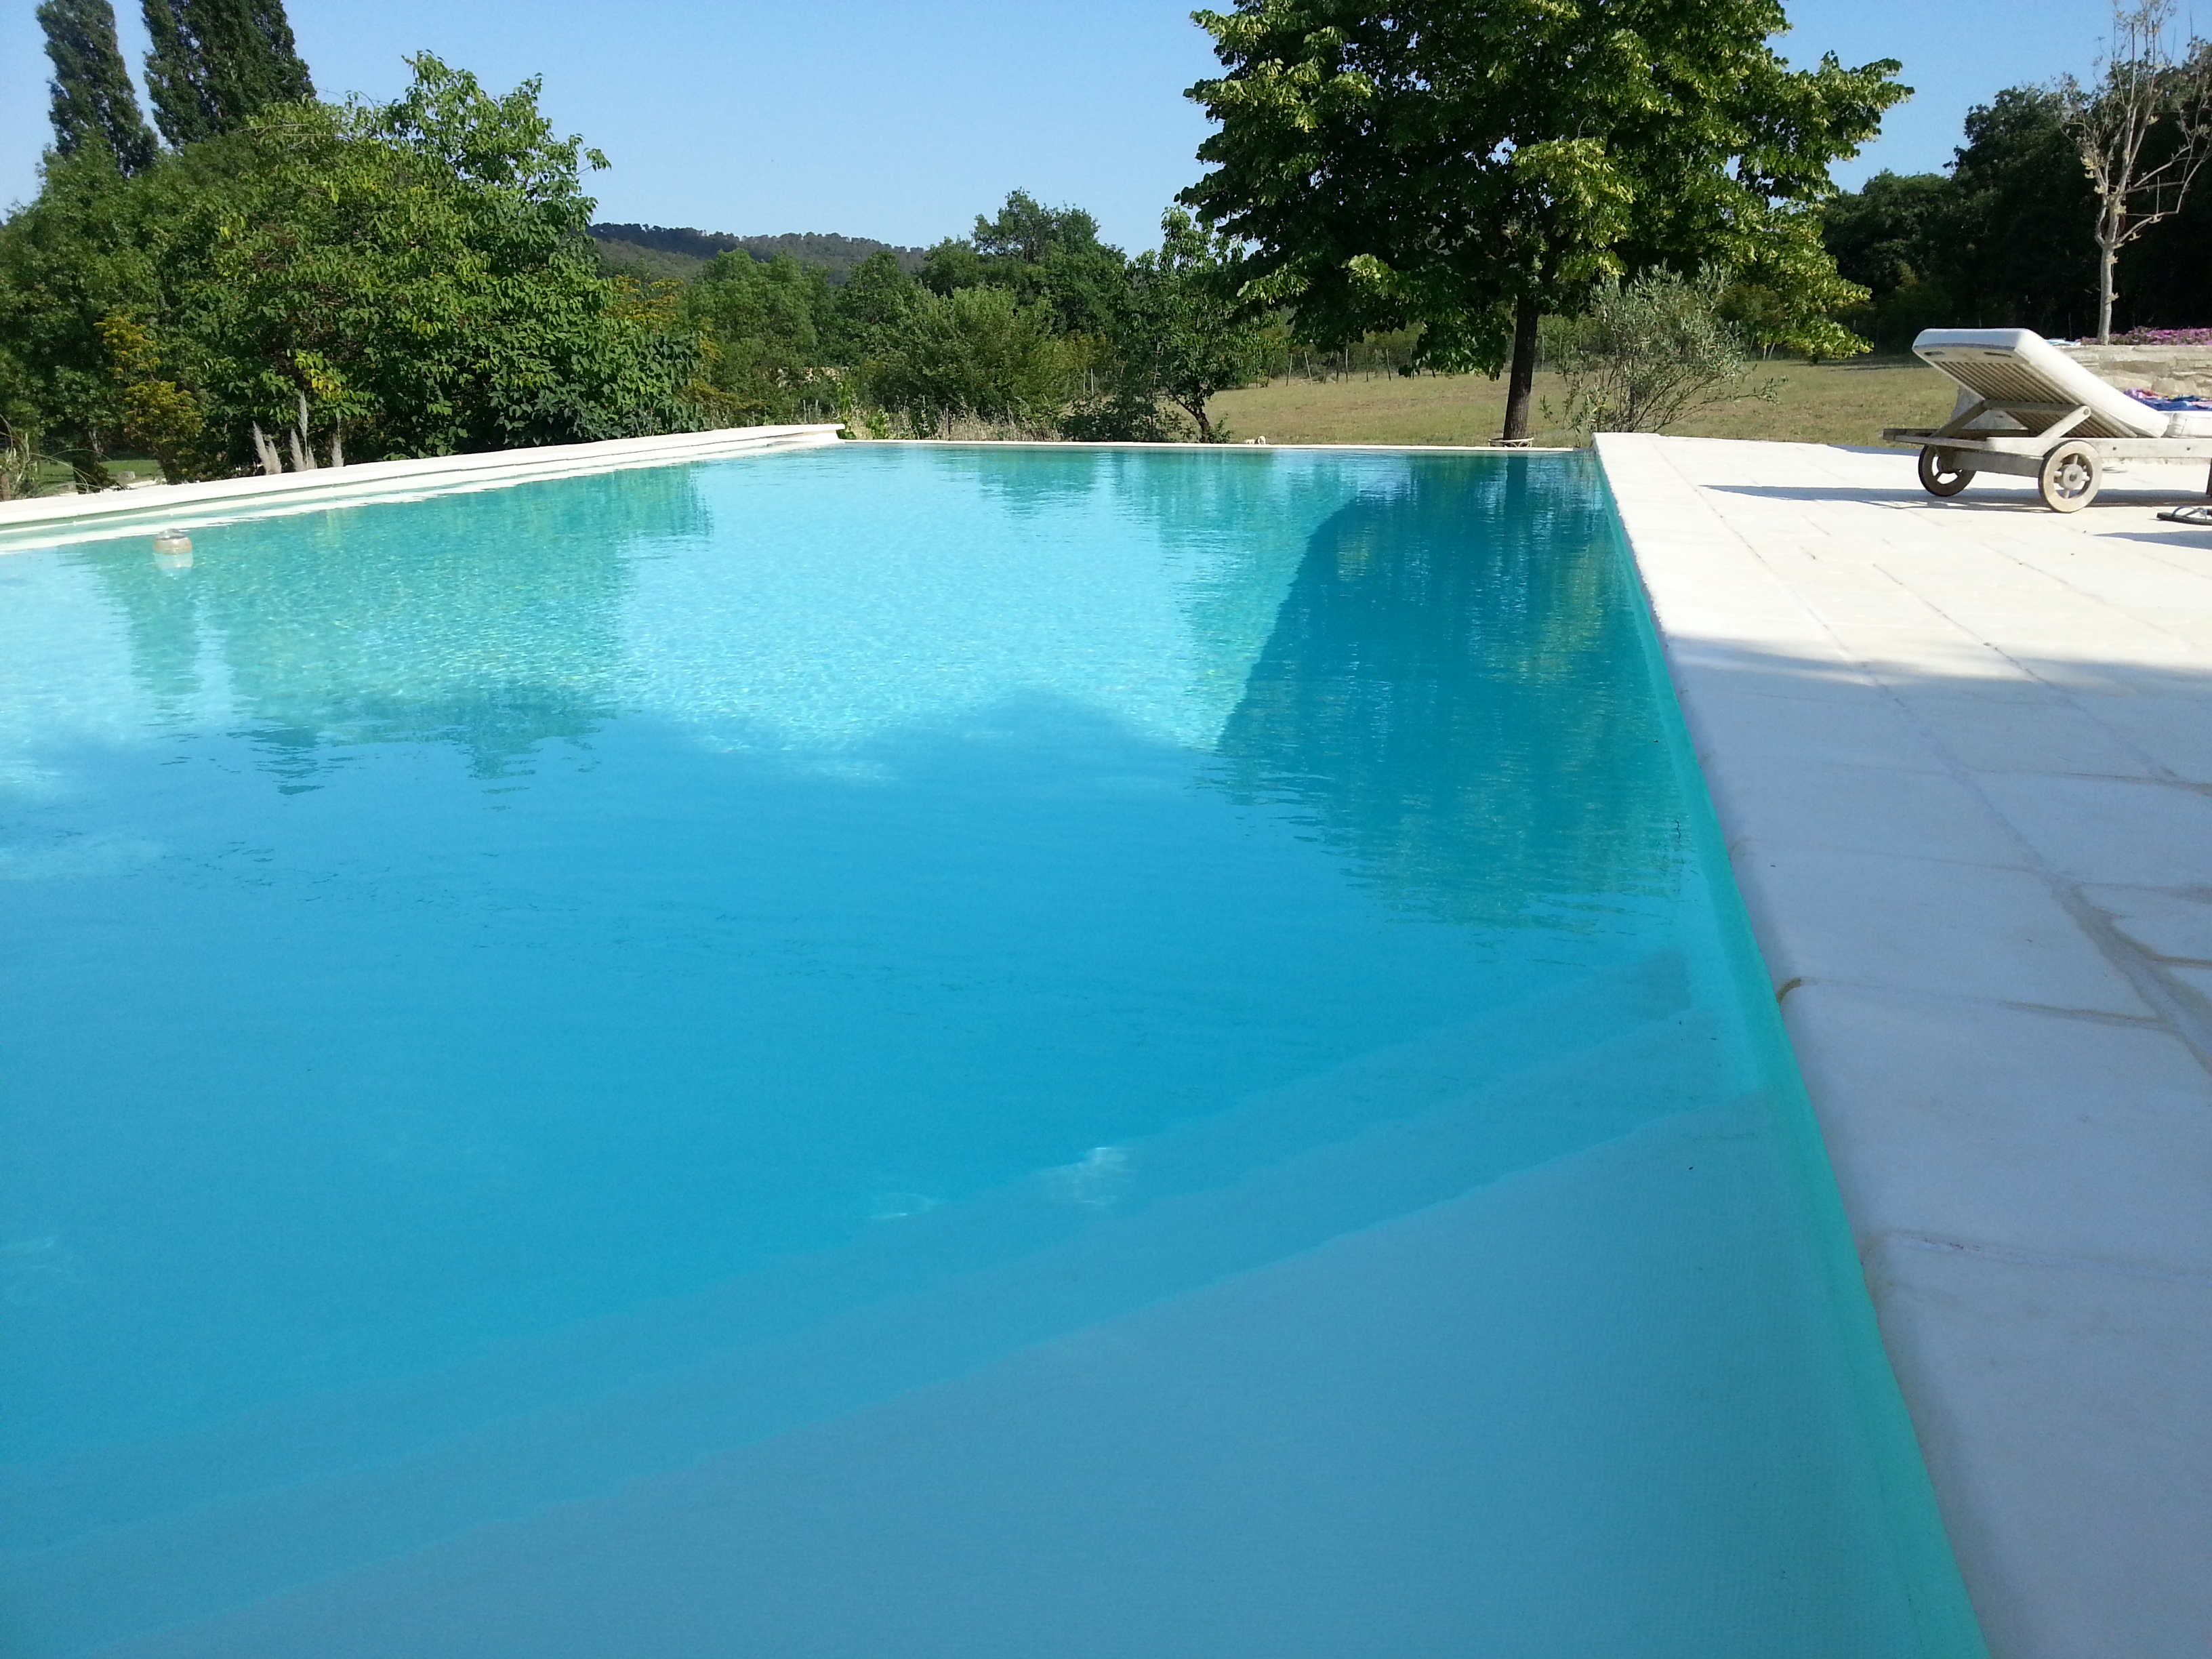 Piscine en kit hors sol photo piscine en kit hors sol pas for Piscine en kit pas cher